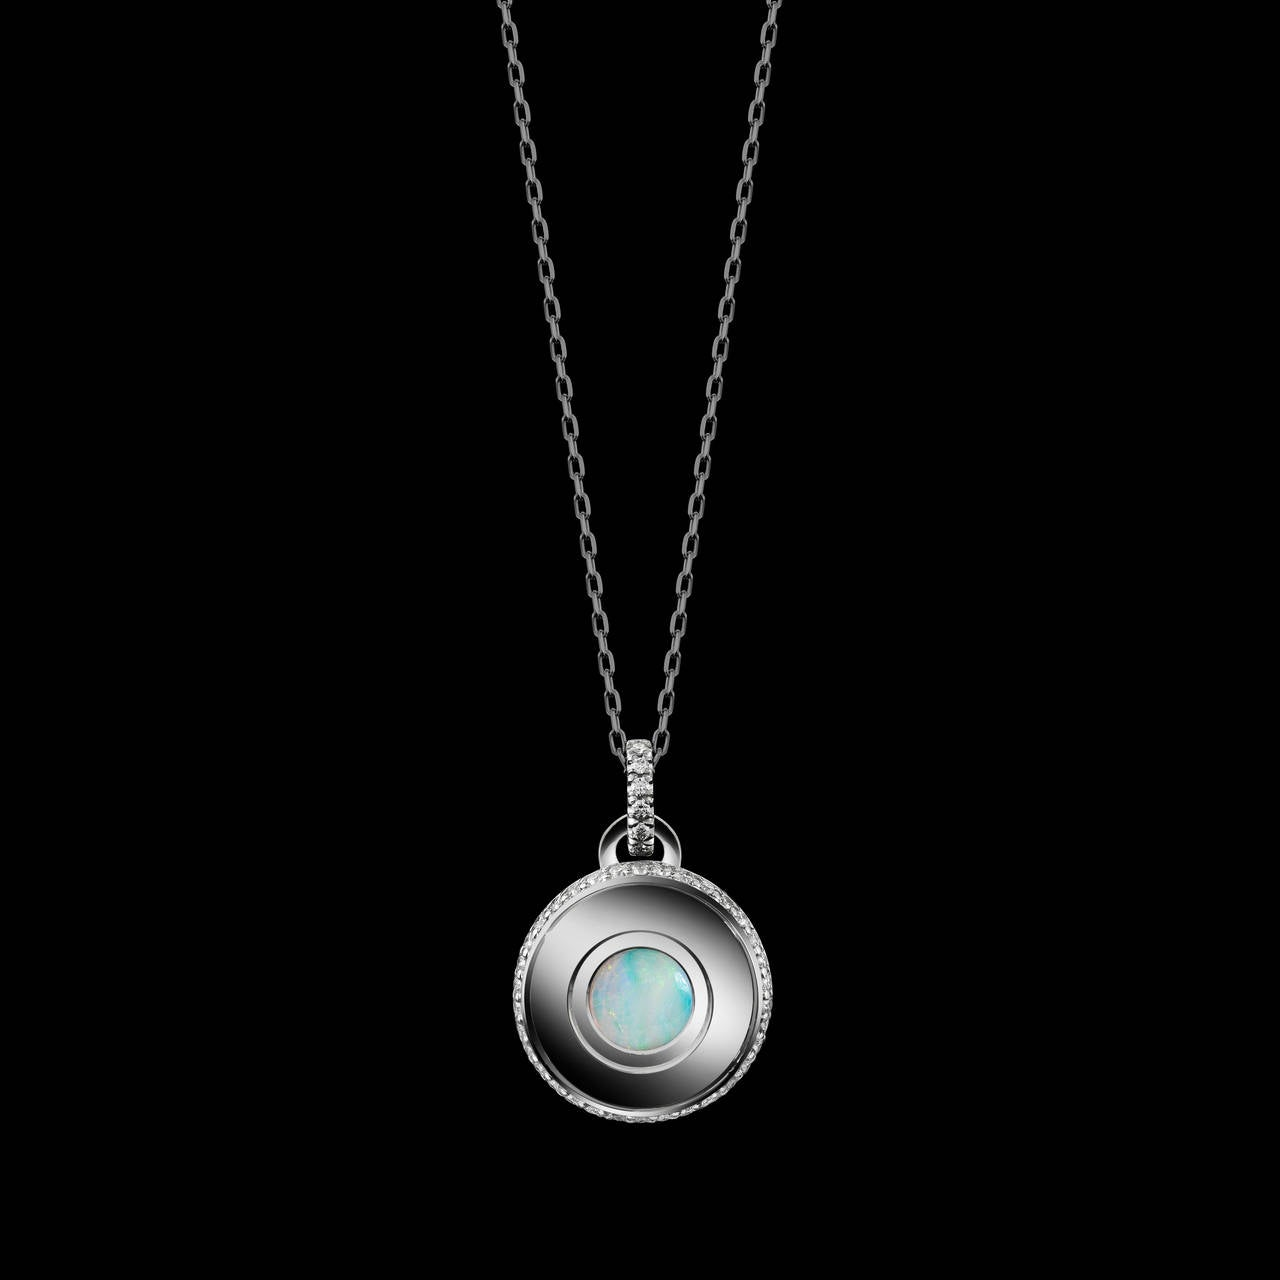 *Please contact us for more information on this piece or on creating your own Alexandra Mor custom Design.   Alexandra Mor October birthstone charm necklace features a Round shaped Opal weighing 0.37 carats. Pendant features 48 round diamonds with a